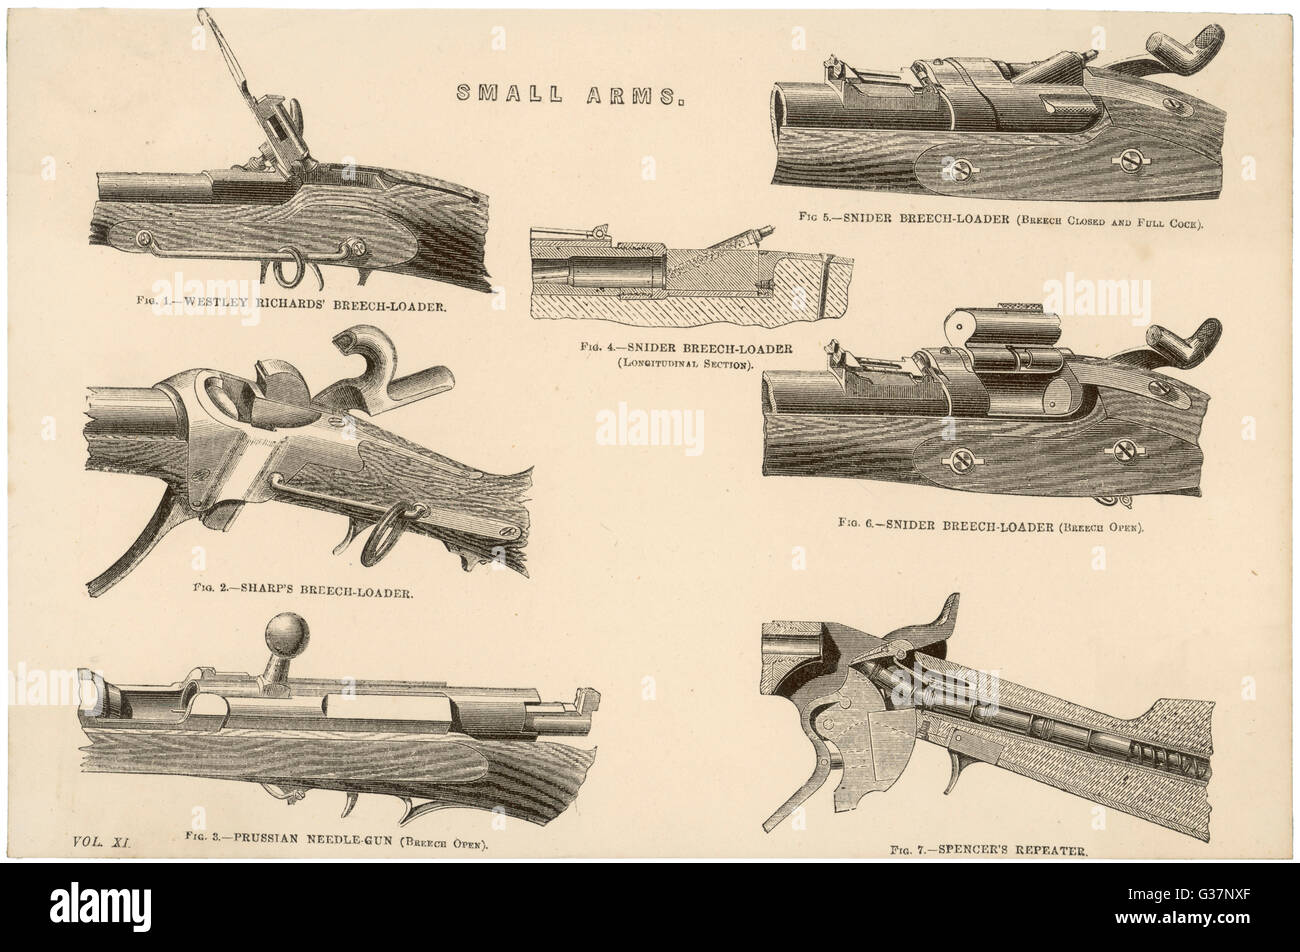 Various rifles, showing  details of loading mechanisms - Stock Image